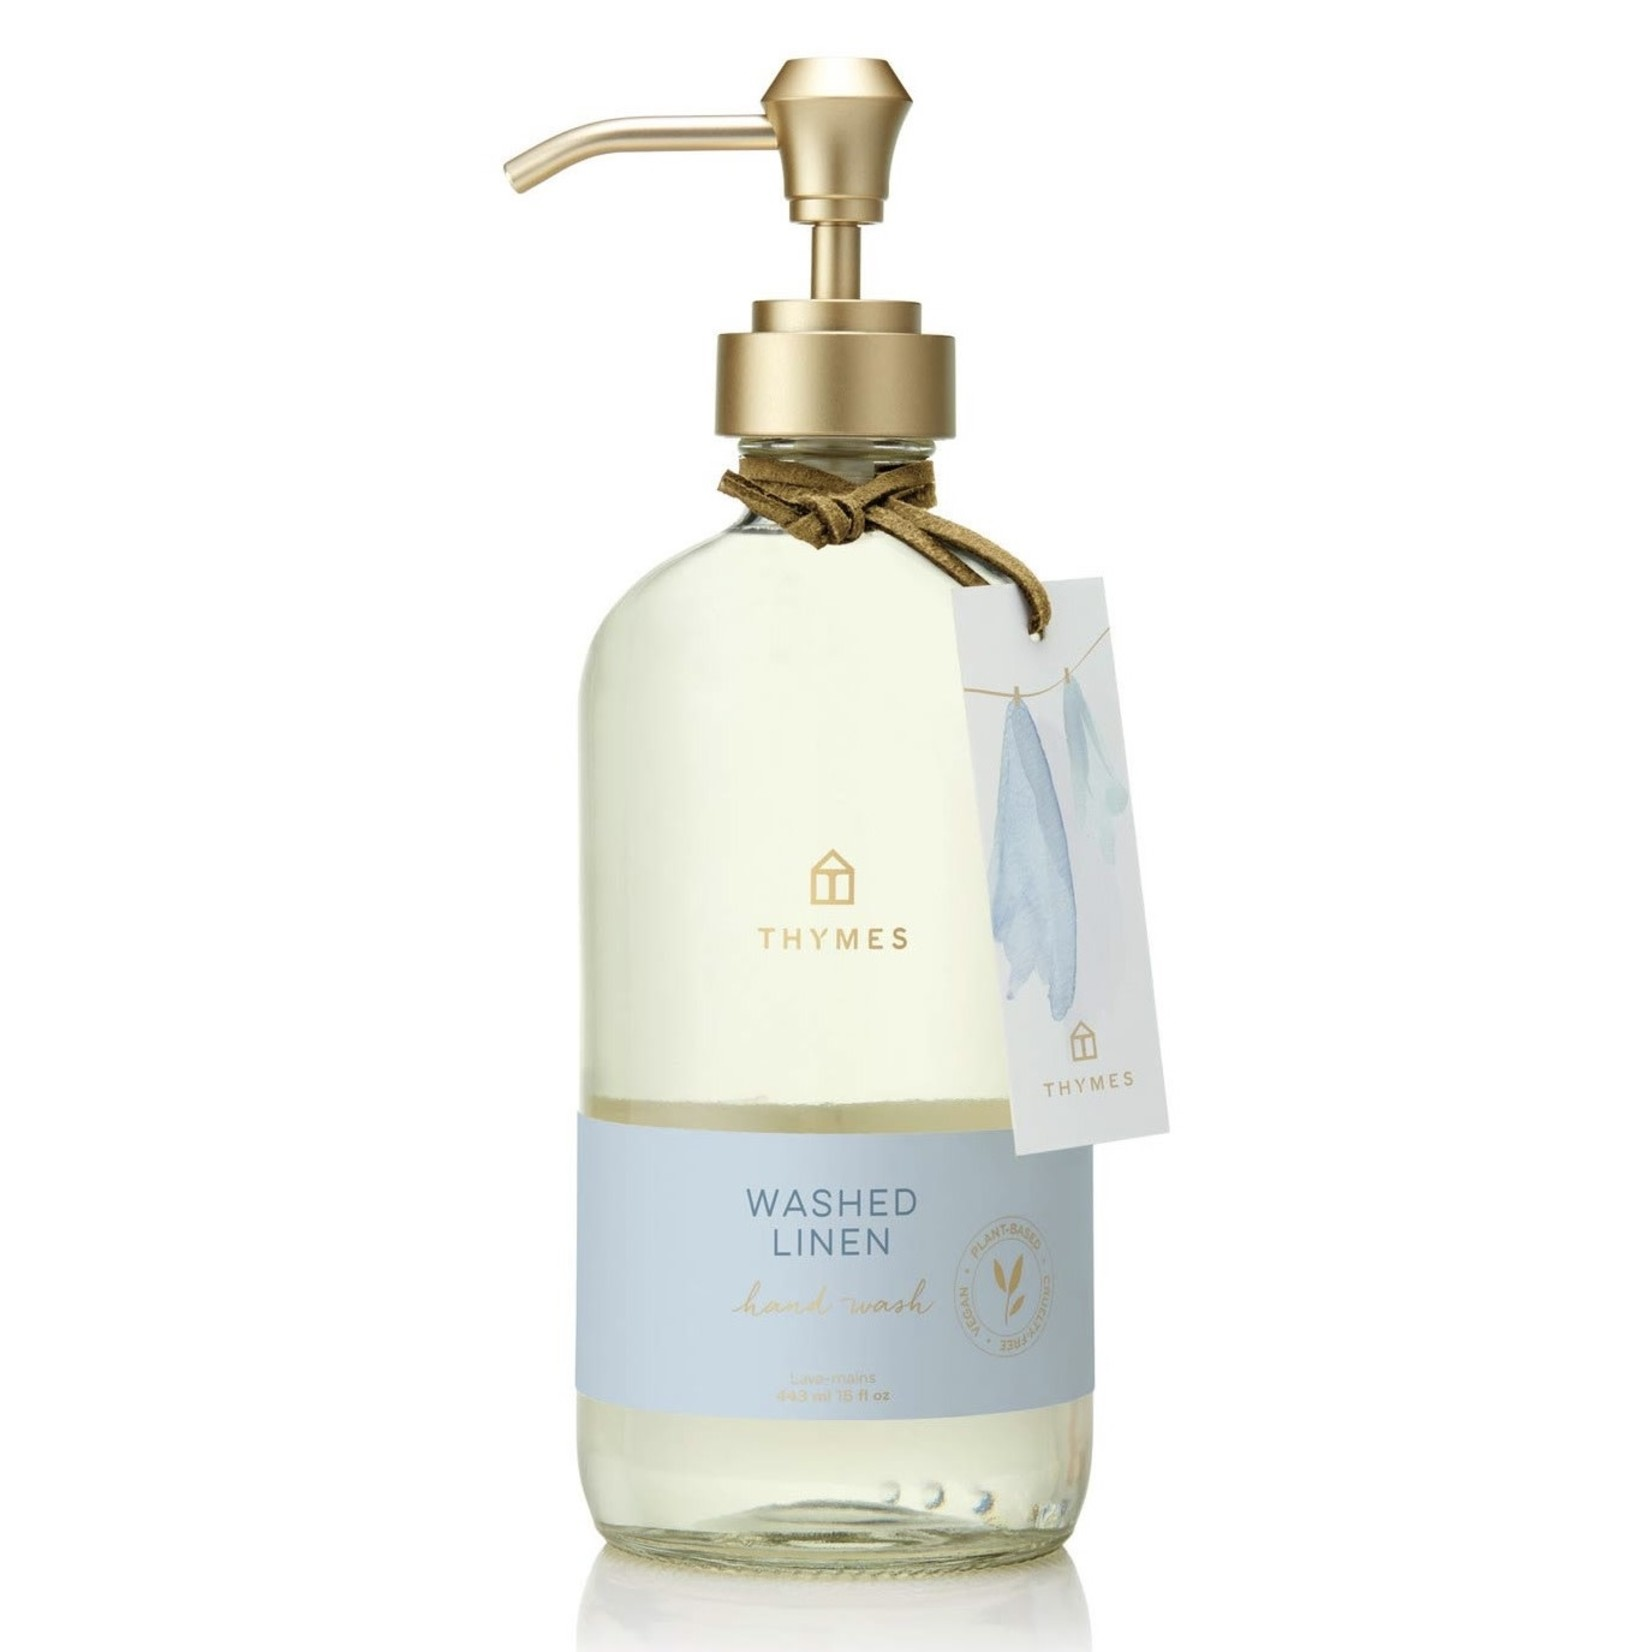 Thymes Washed Linen Hand Wash Large